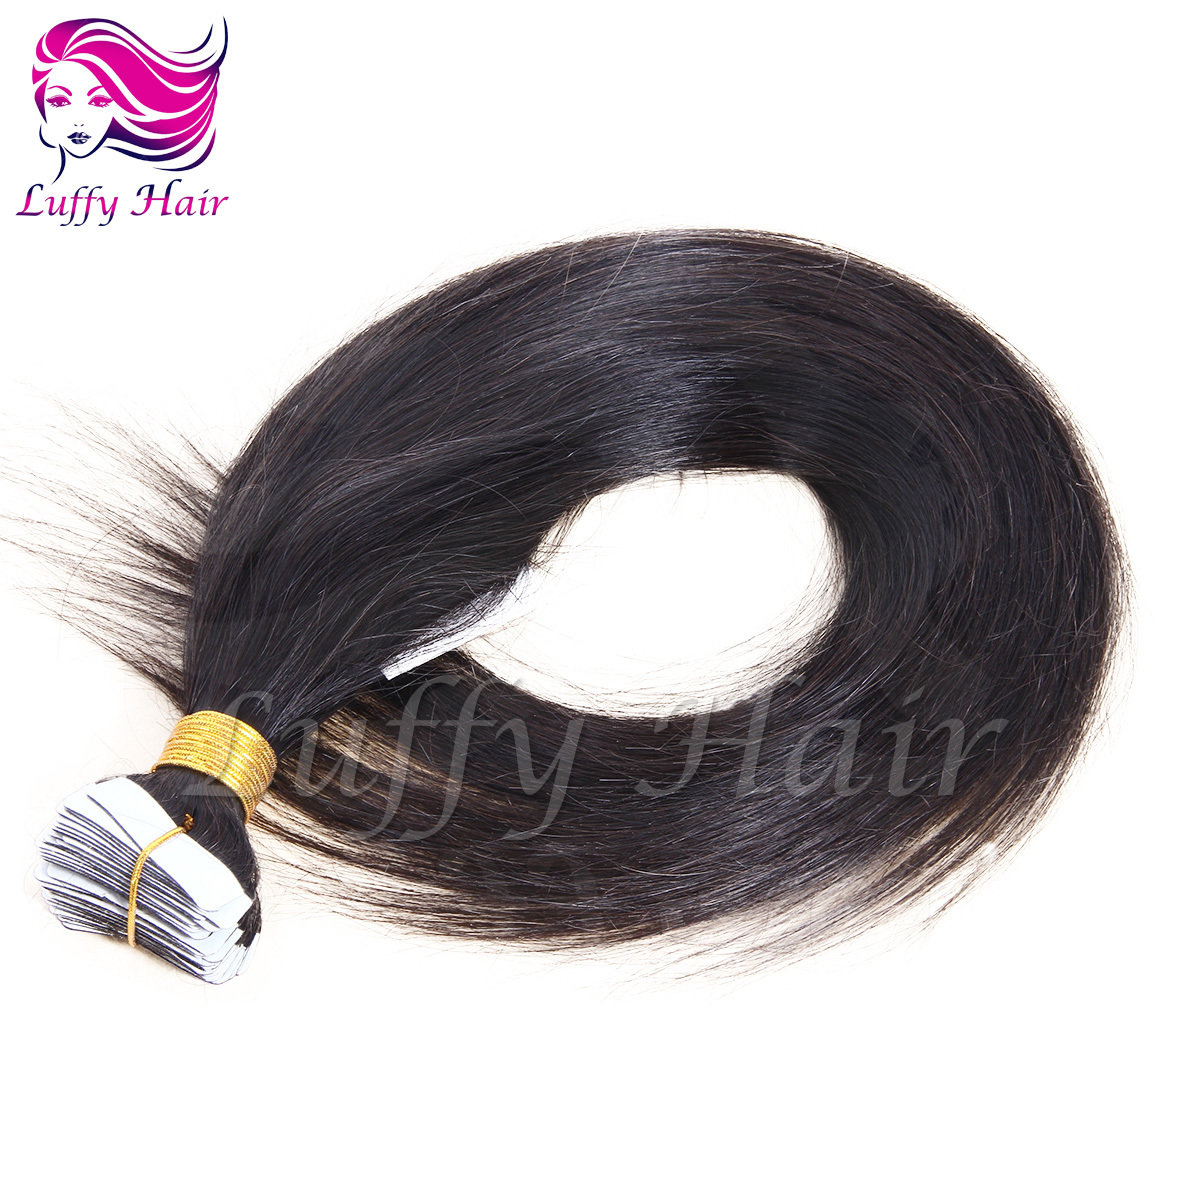 8A Virgin Human Hair Silky Straight Tape In Hair Extensions - KTL001